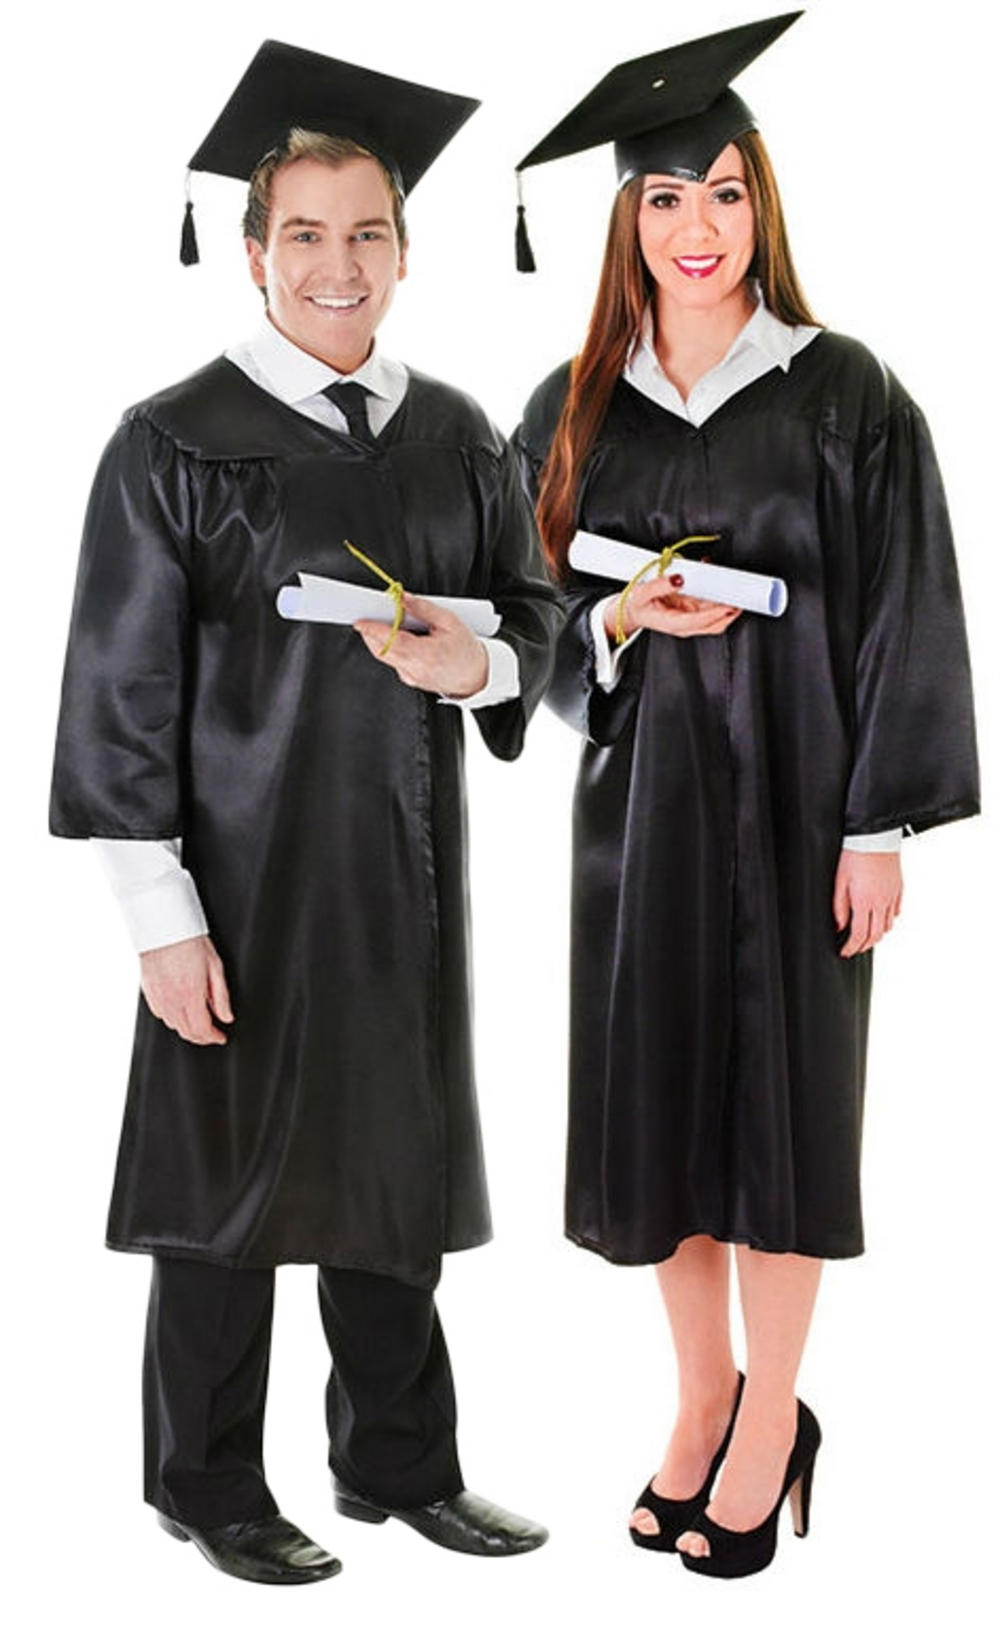 Graduation Robe & Hat Costume